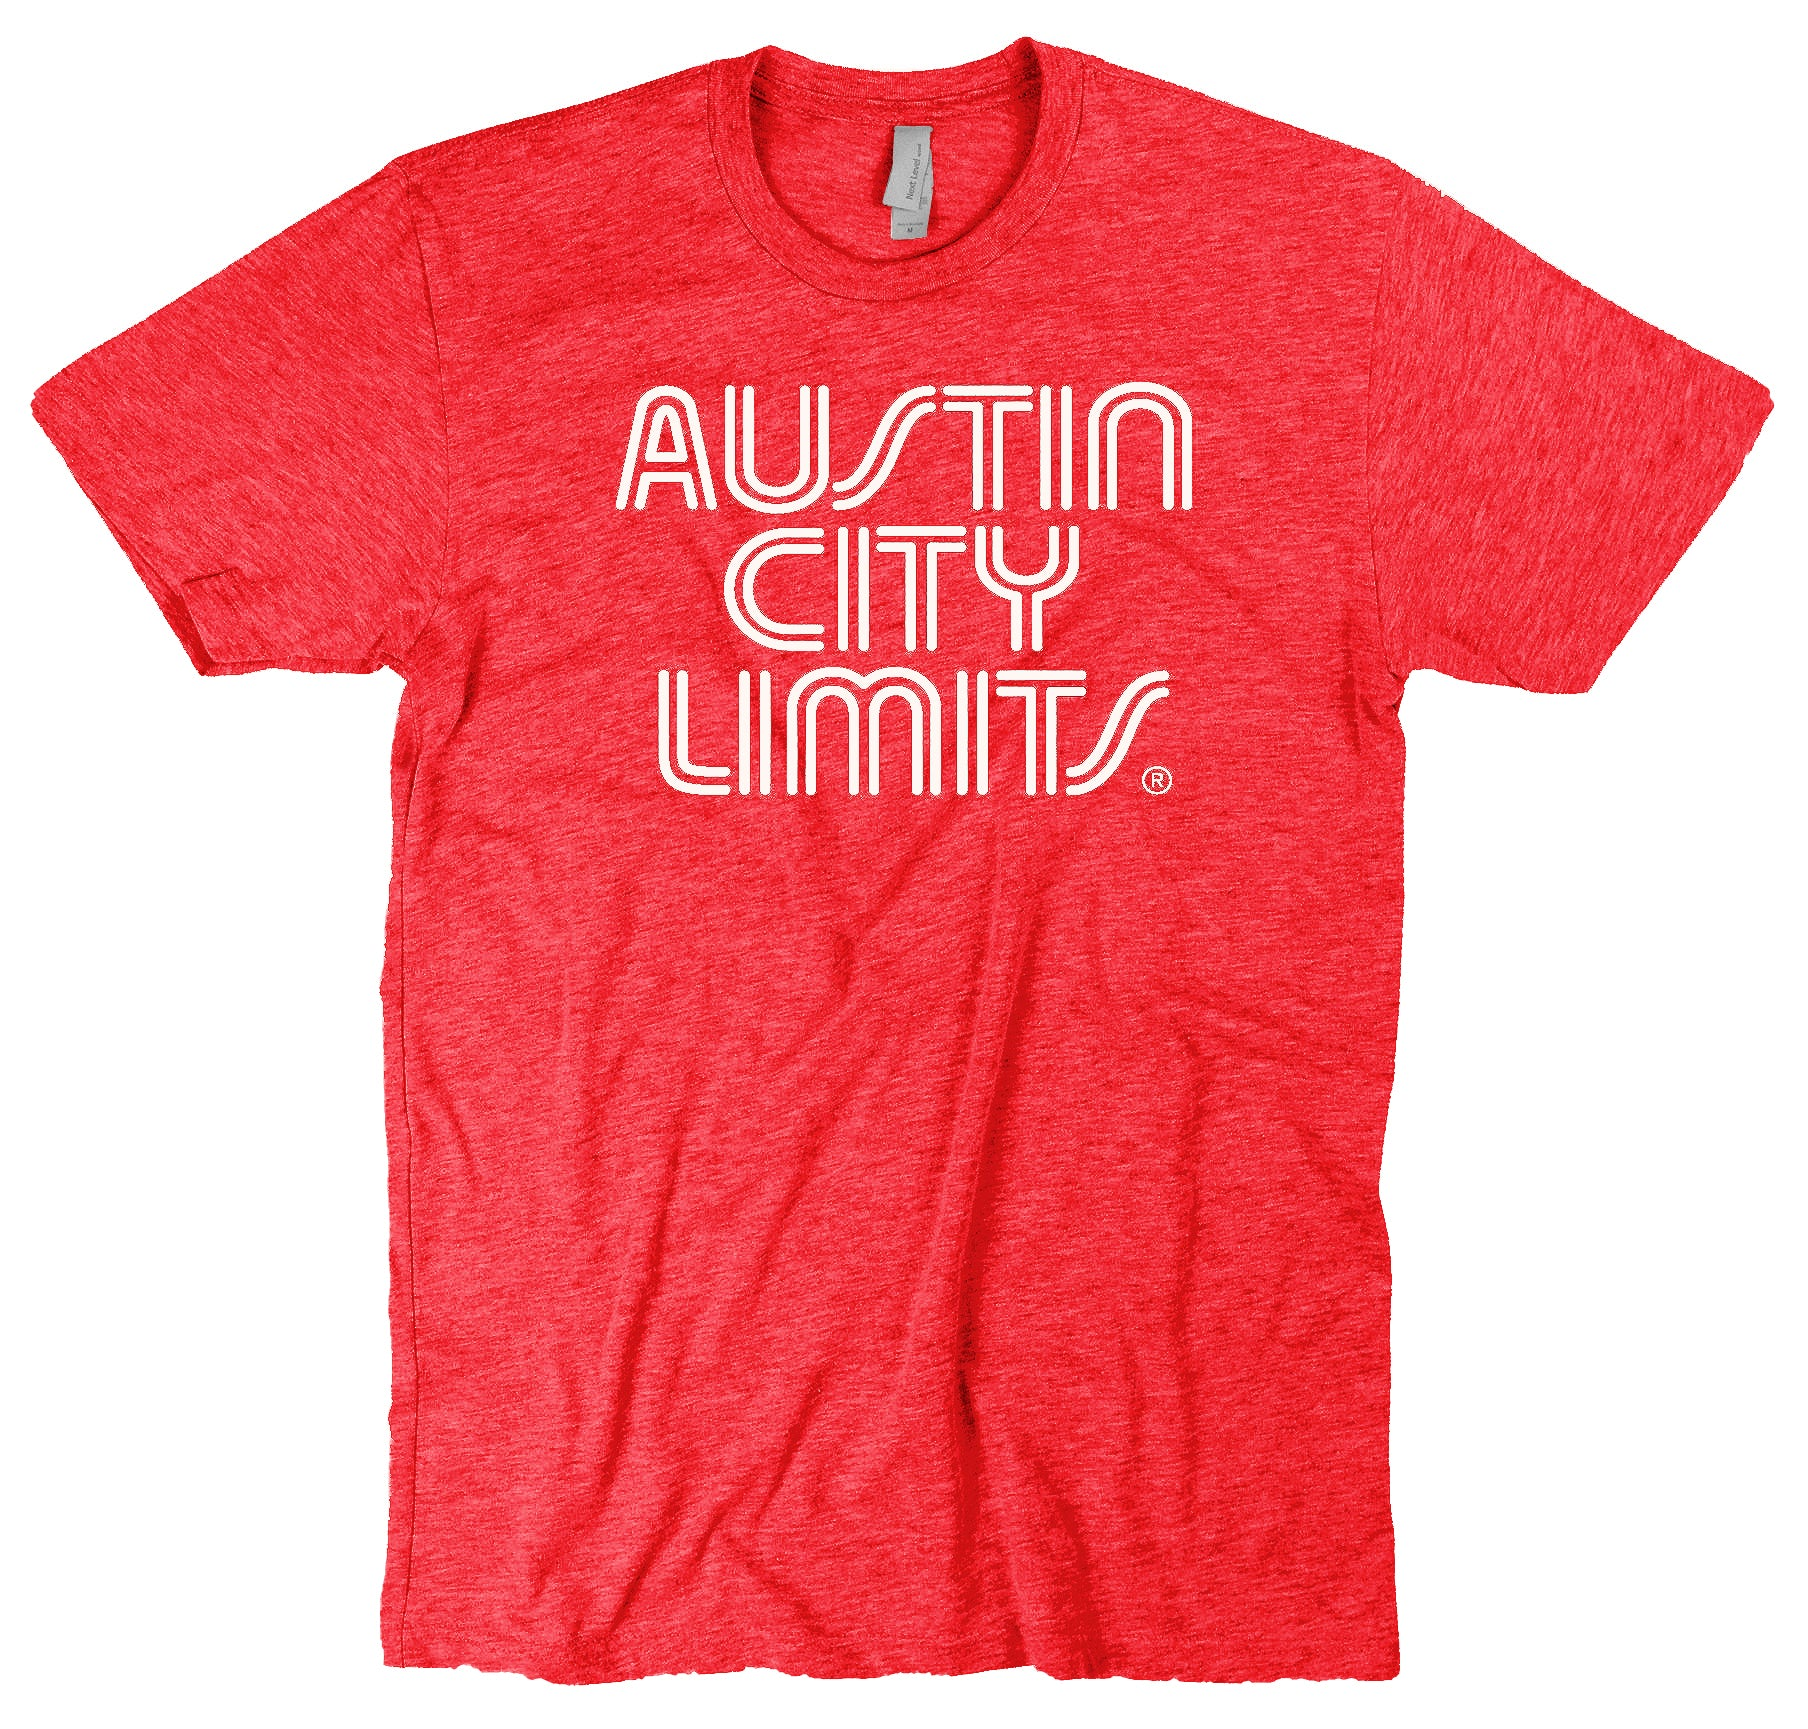 Vintage Red Unisex Tee with White ACL Logo